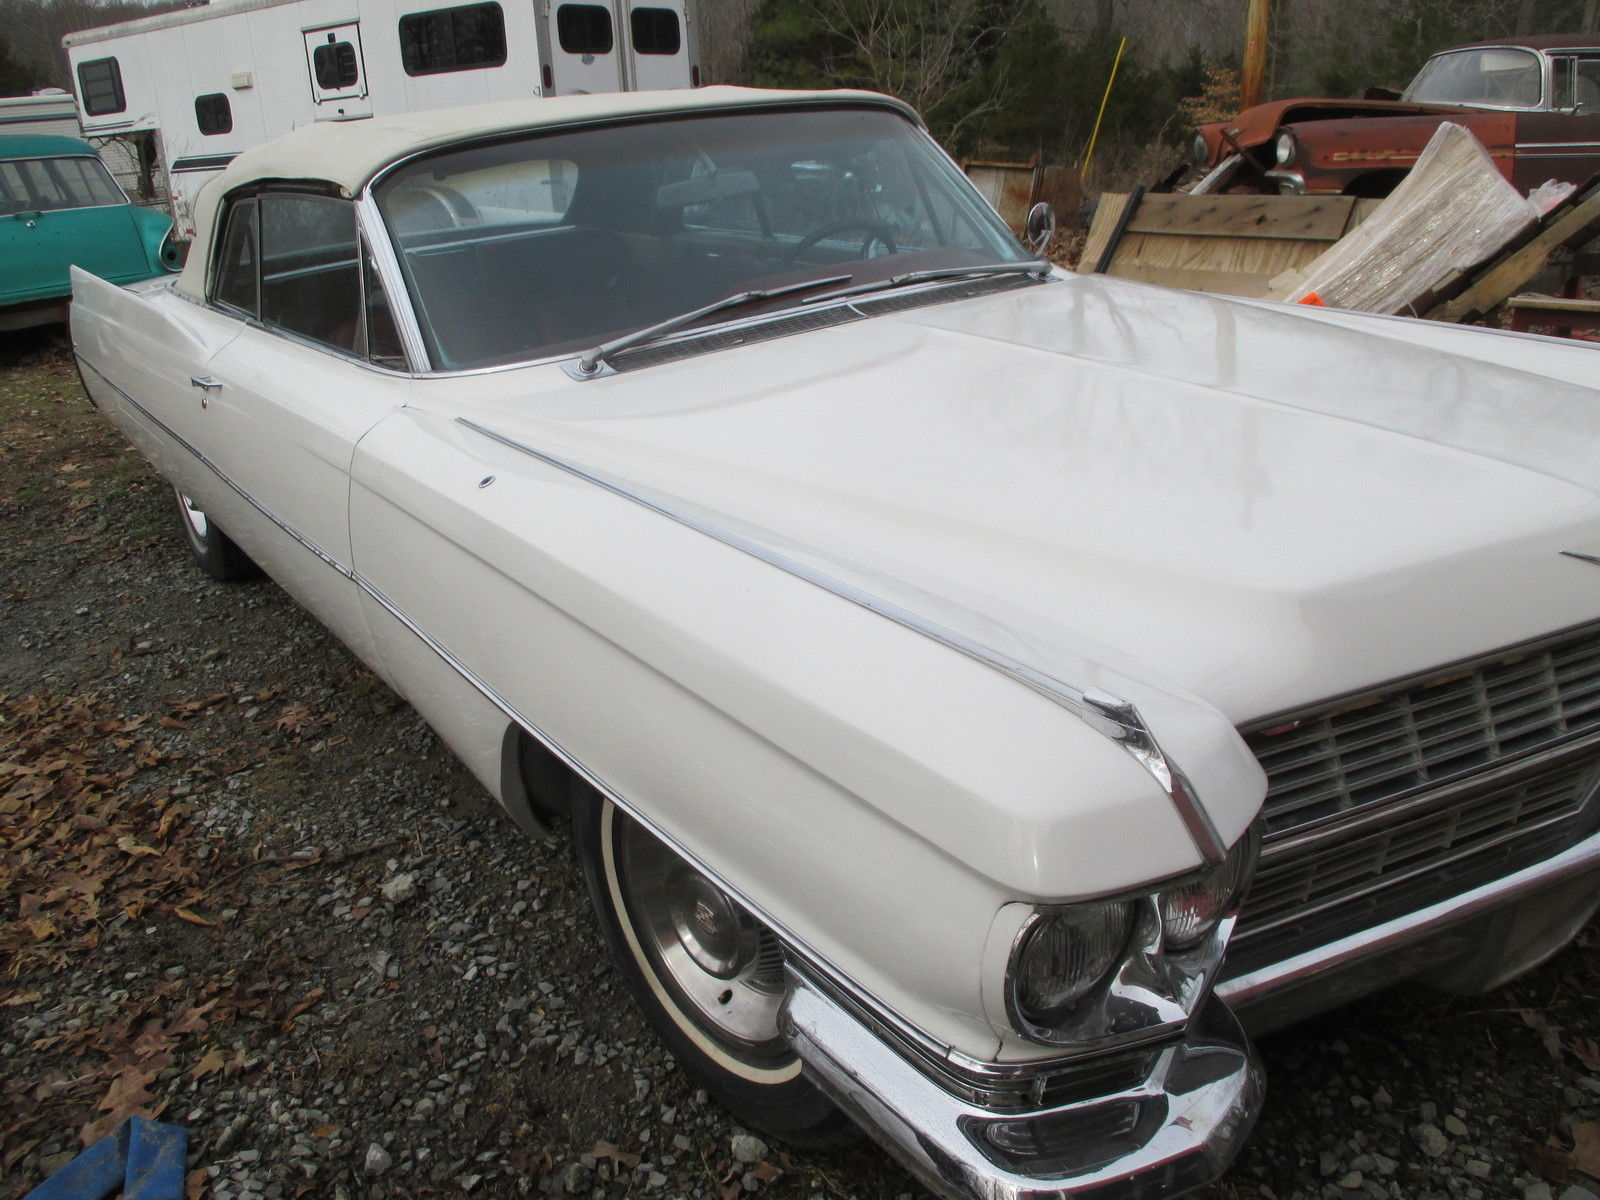 1964 cadillac convertible cruiser real muscle car not chevy or ford ...